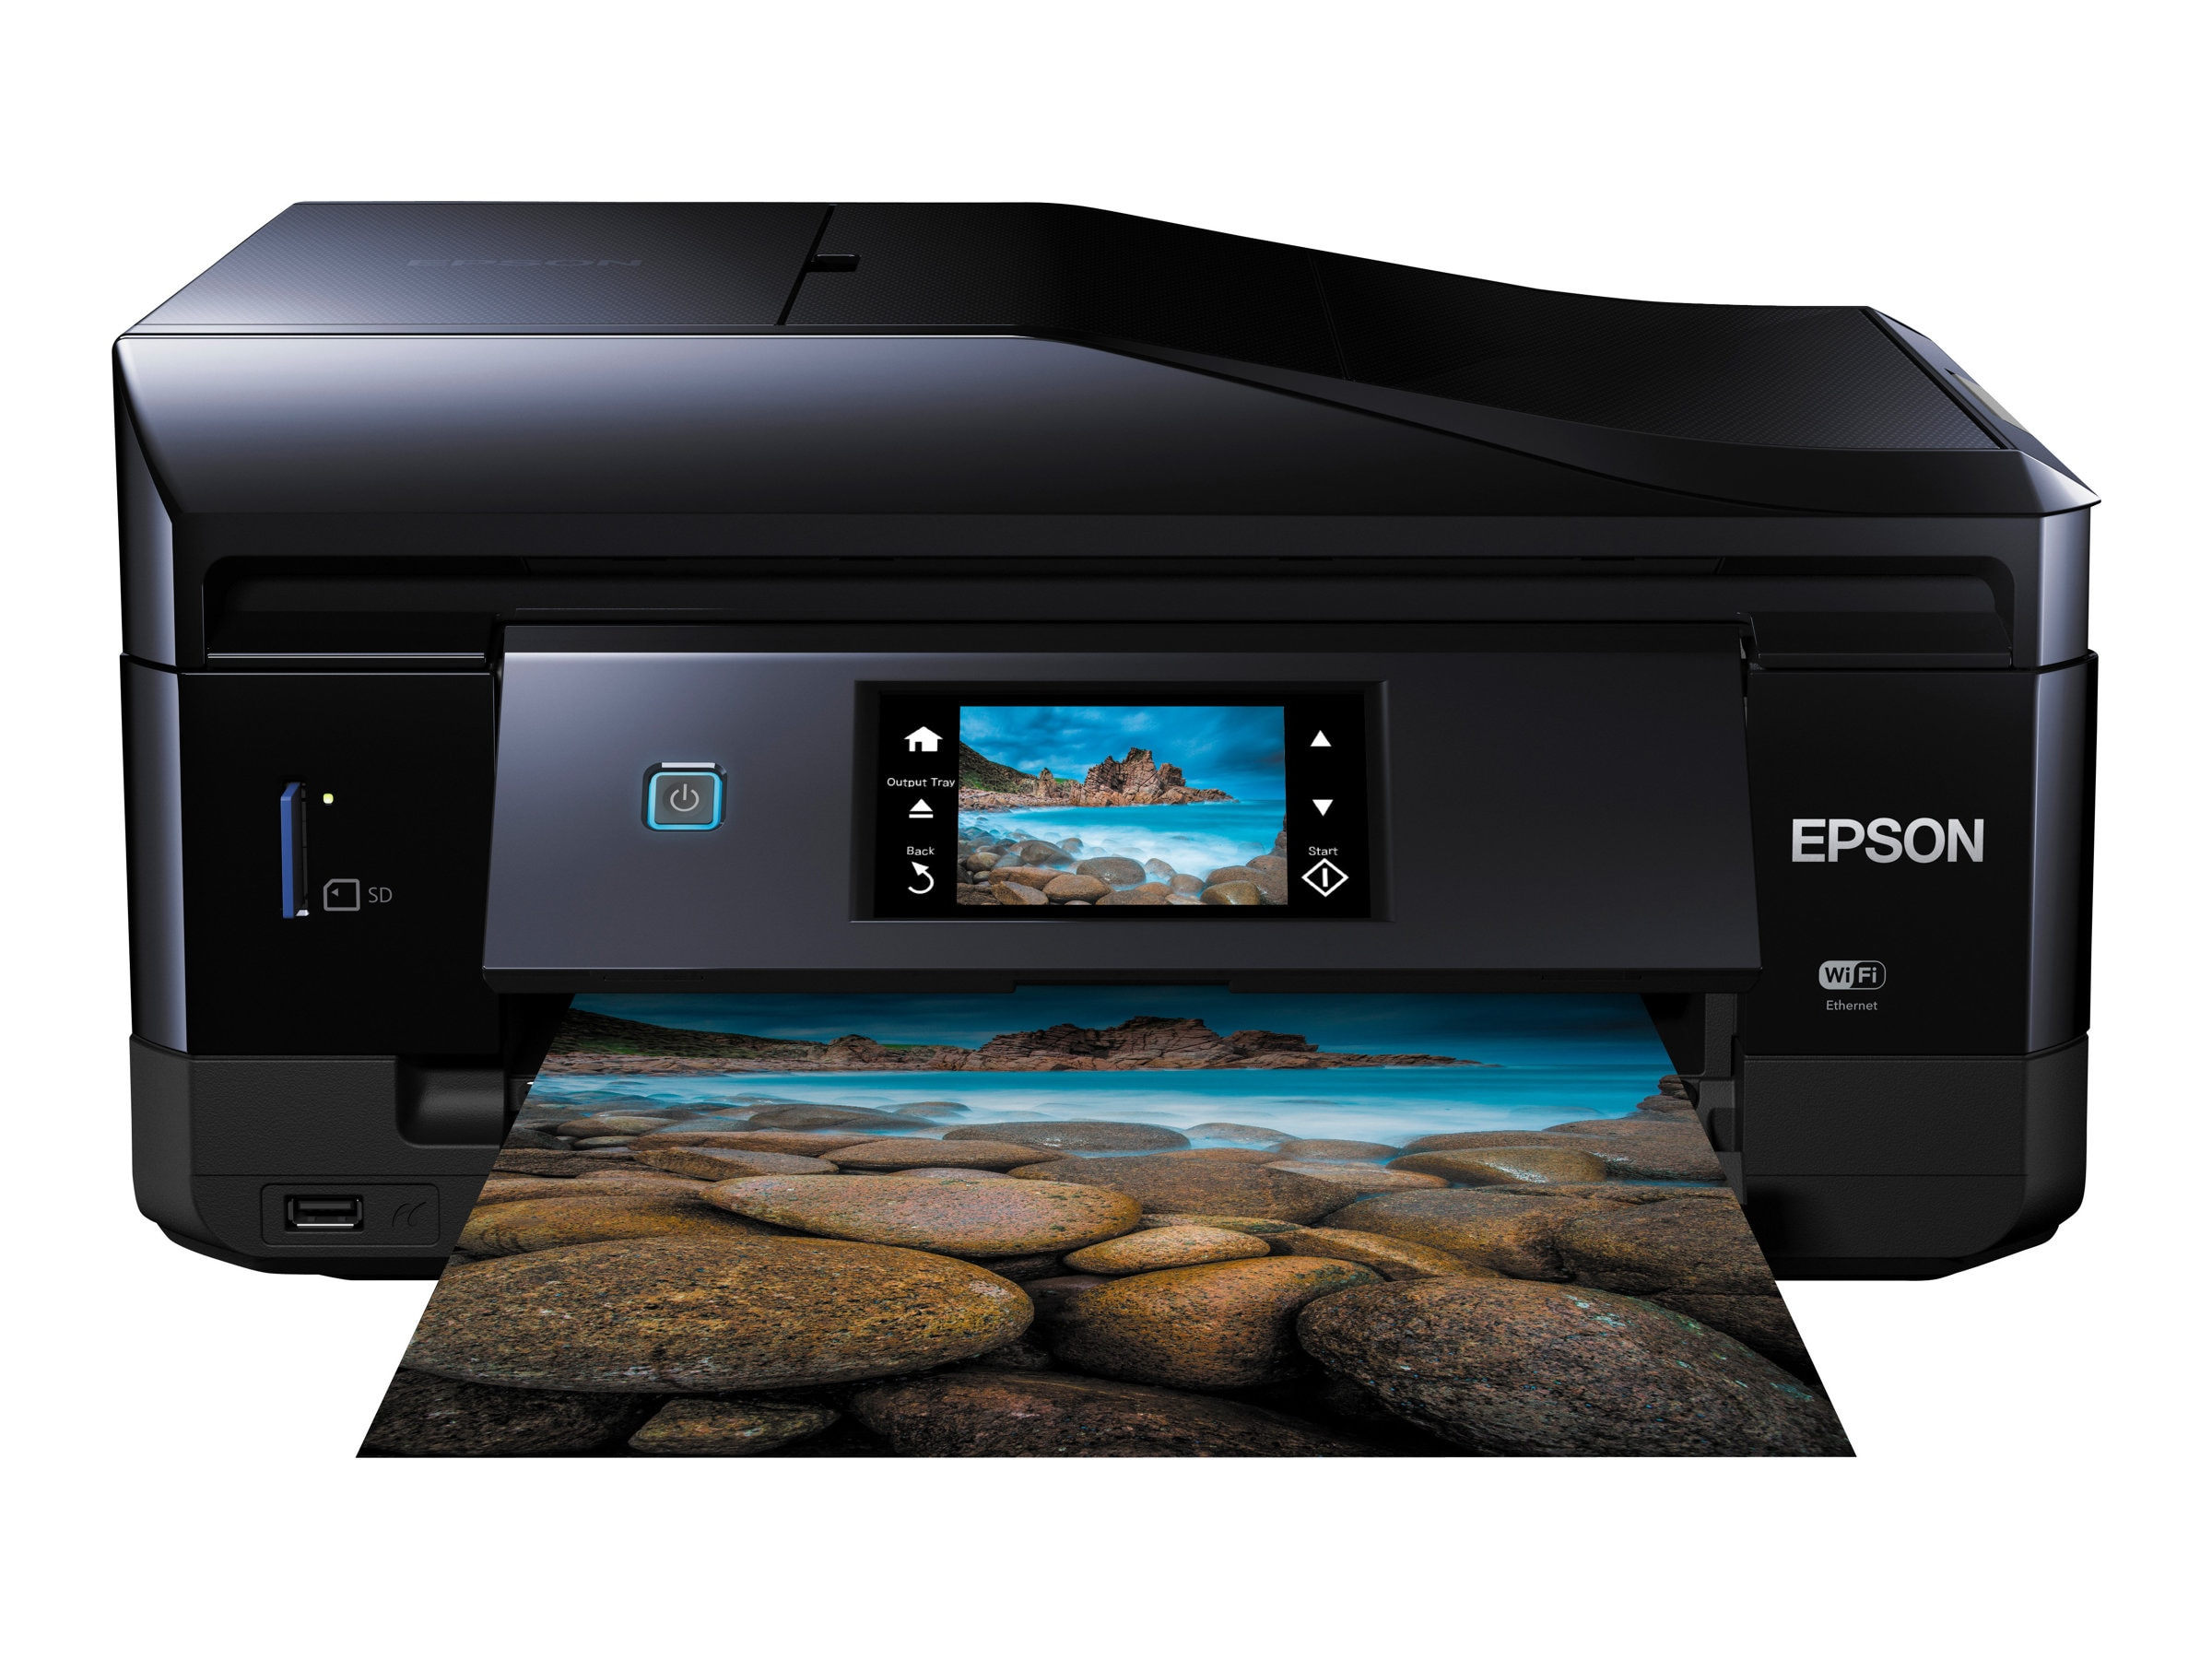 Refurb. Epson XP820 All-In-One Printer, C11CD99201-N, 31447500, MultiFunction - Ink-Jet